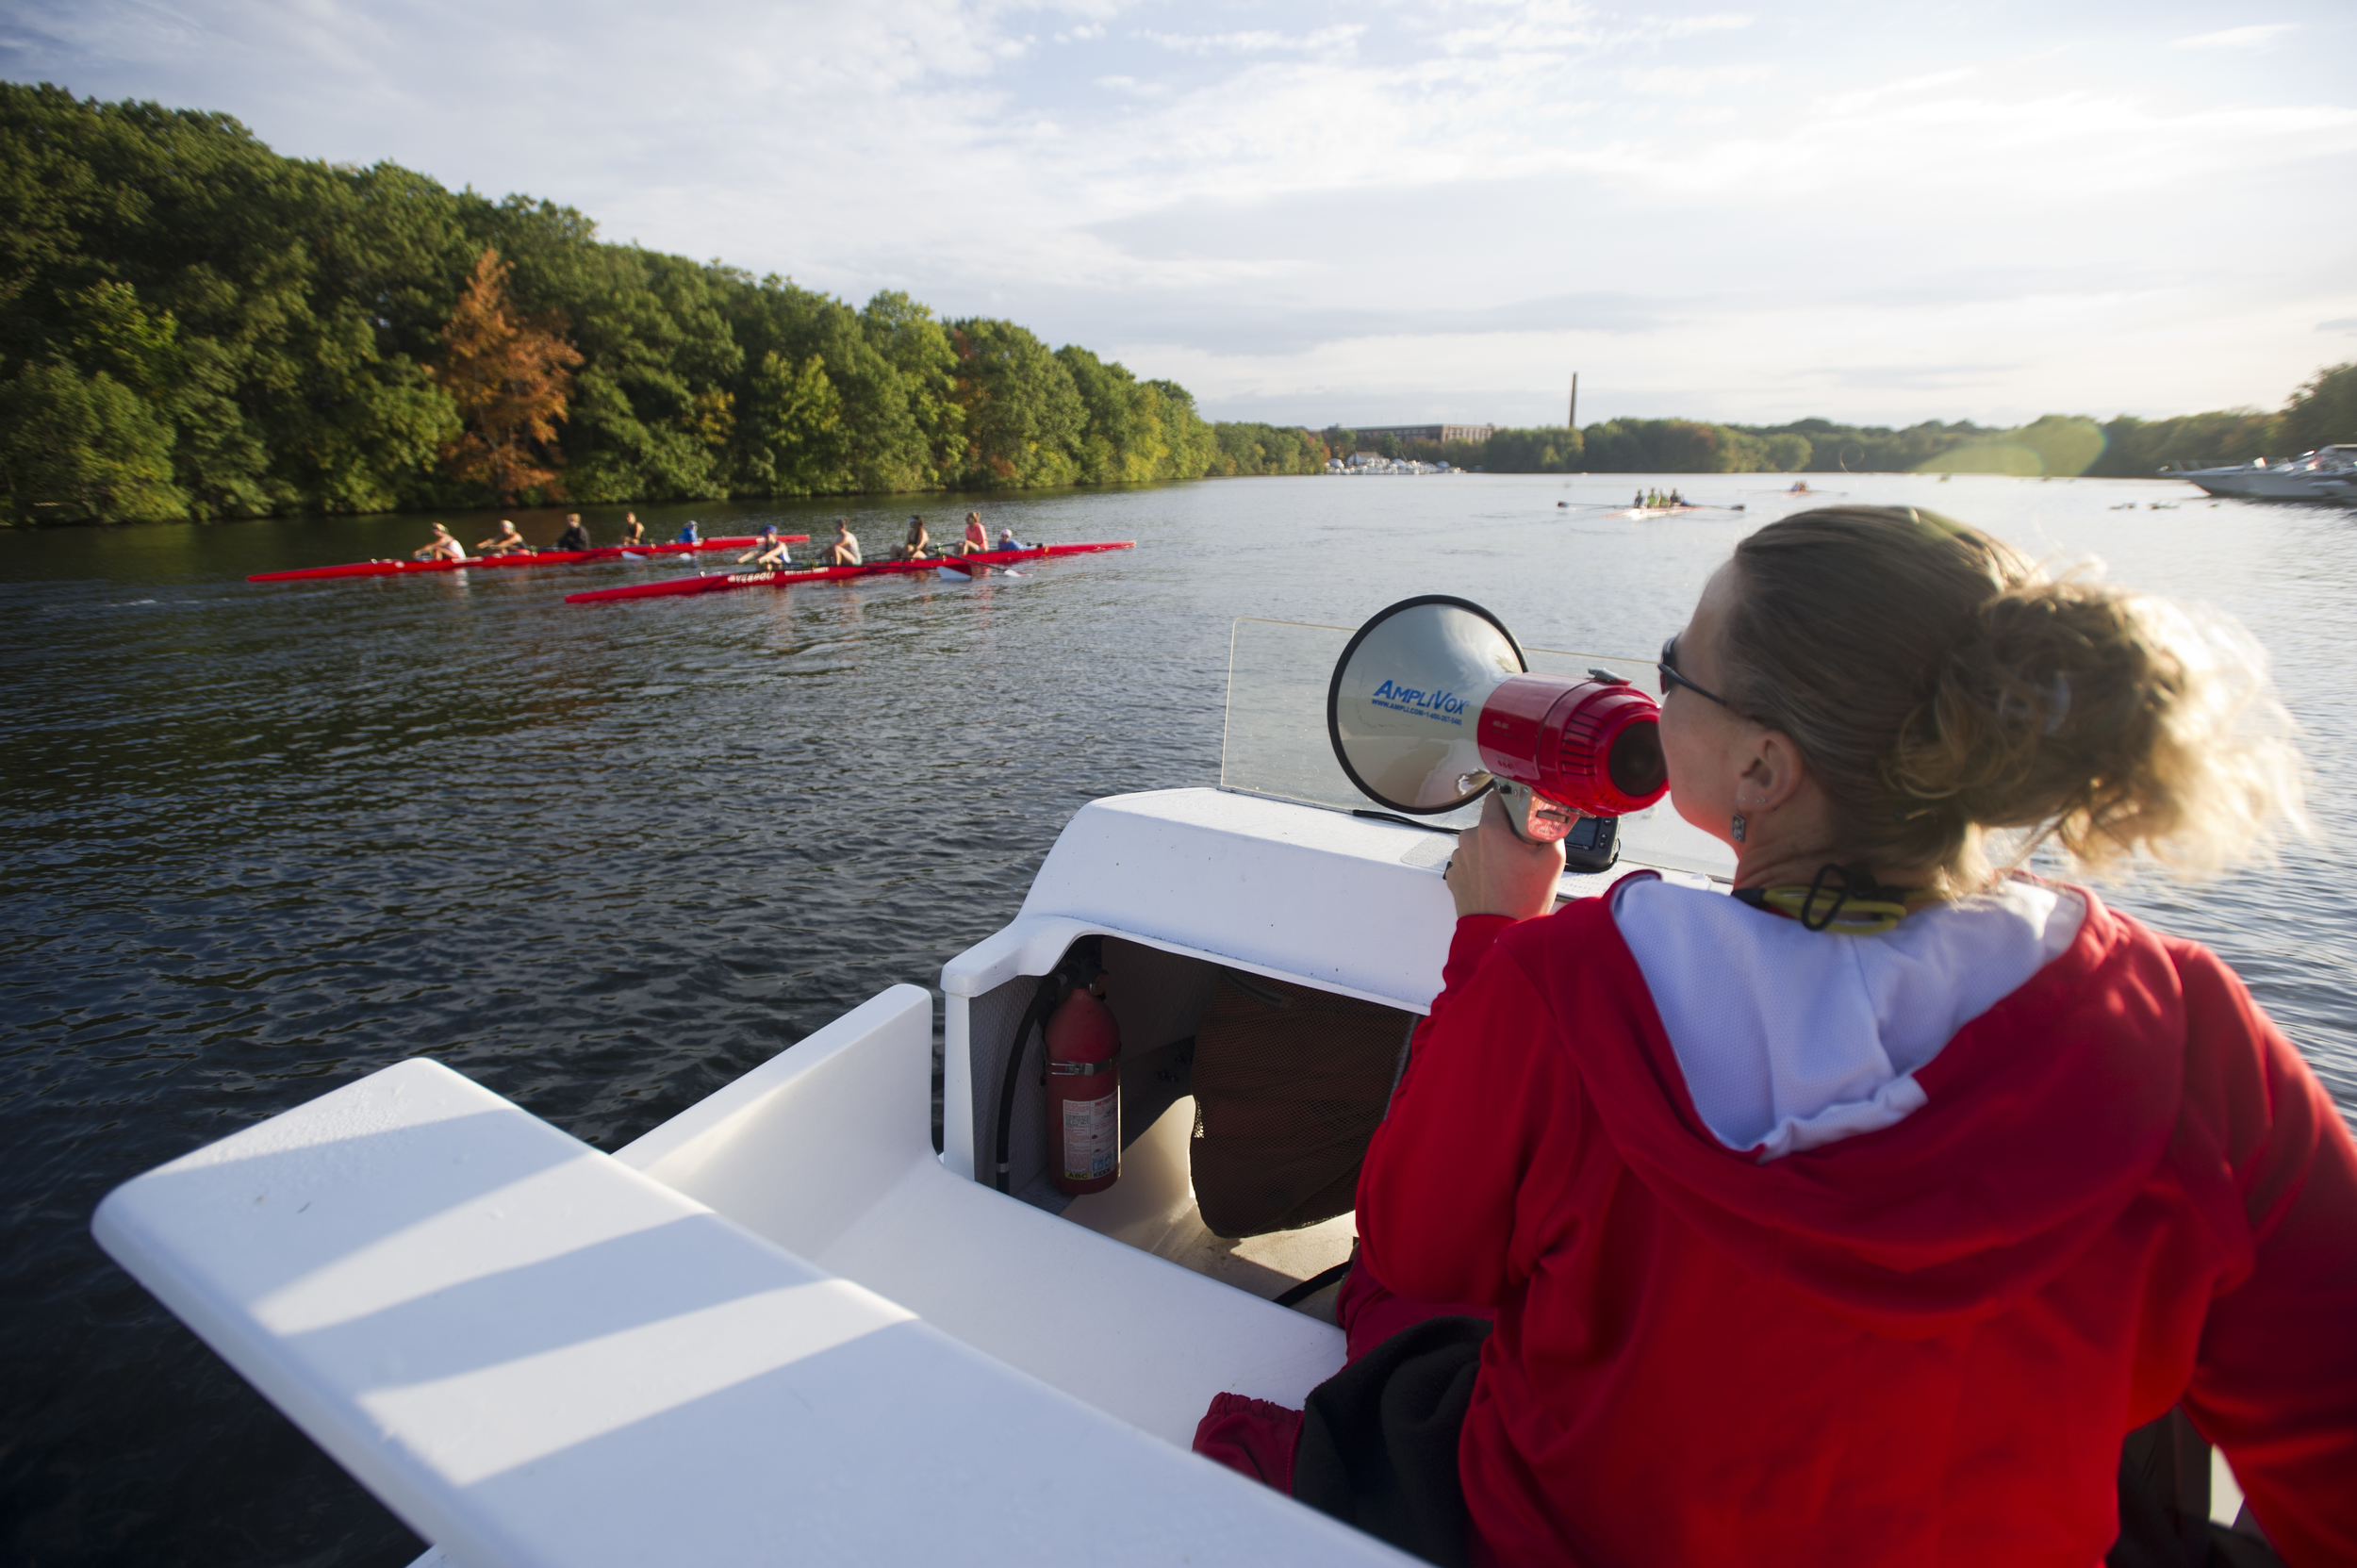 The BU Women's Crew Team coach Stacey Rippetoe does her thing on the Charles during an early morning practice October 7, 2014. Photo by Cydney Scott for Boston University Photography